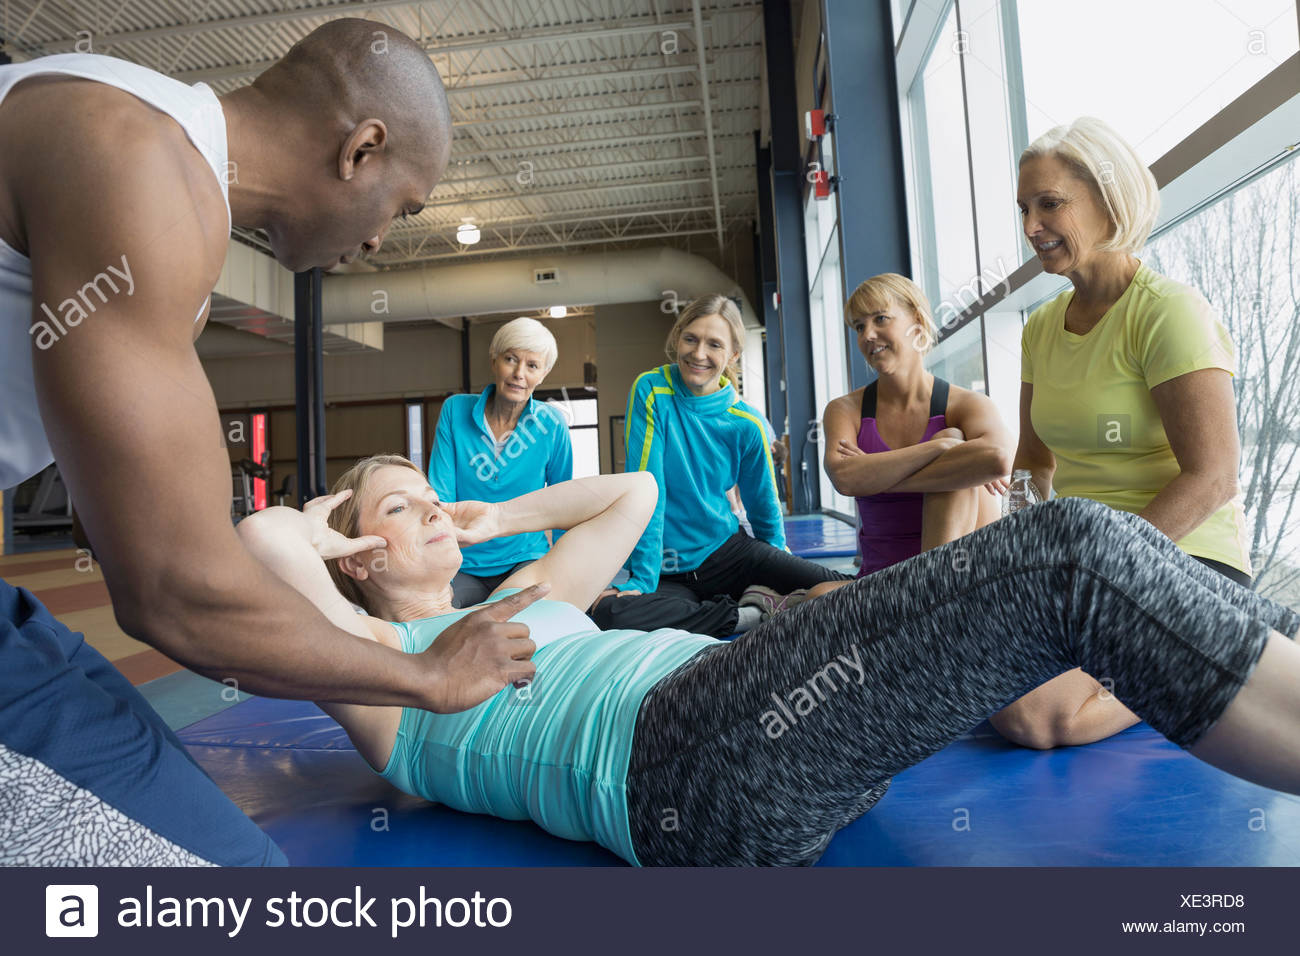 Personal trainer guiding woman甄s sit-ups at gym - Stock Image